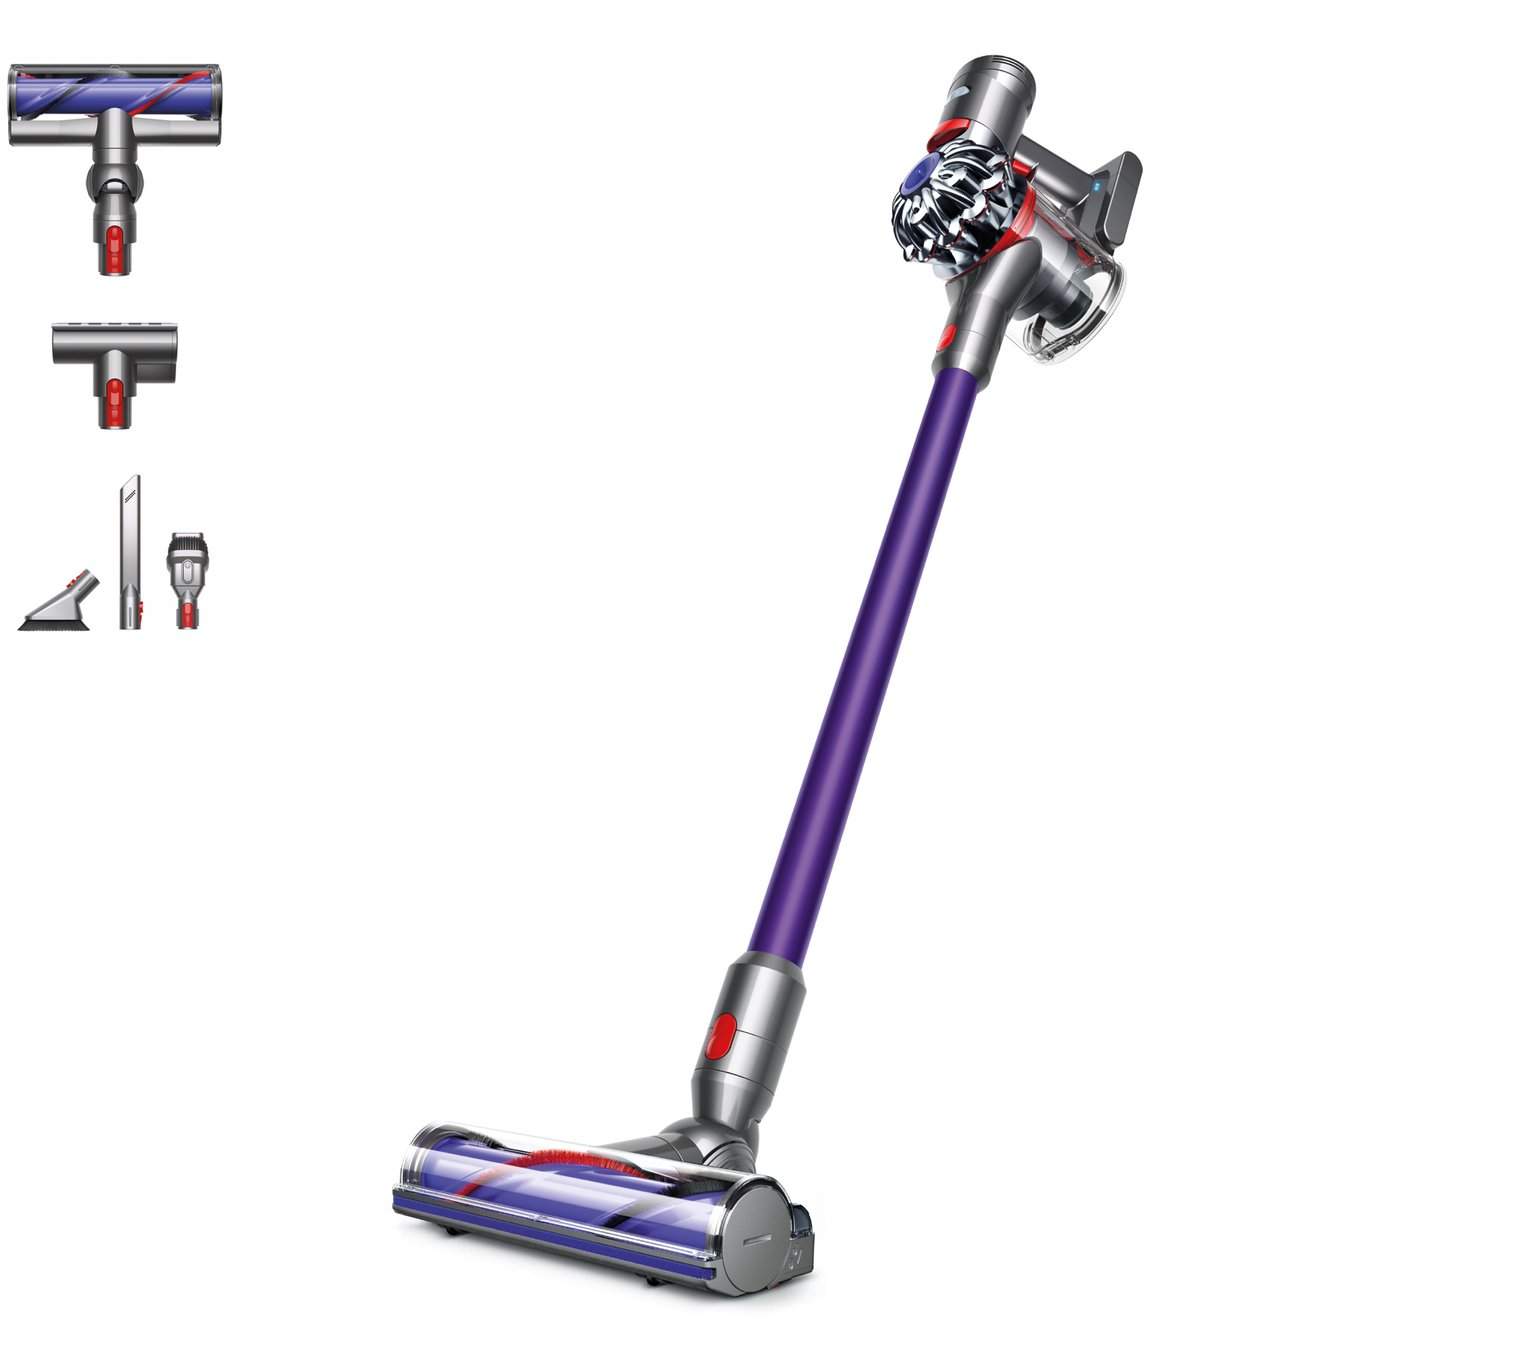 cordless vacuum cleaners dyson v7 animal cordless vacuum cleaner review 12760